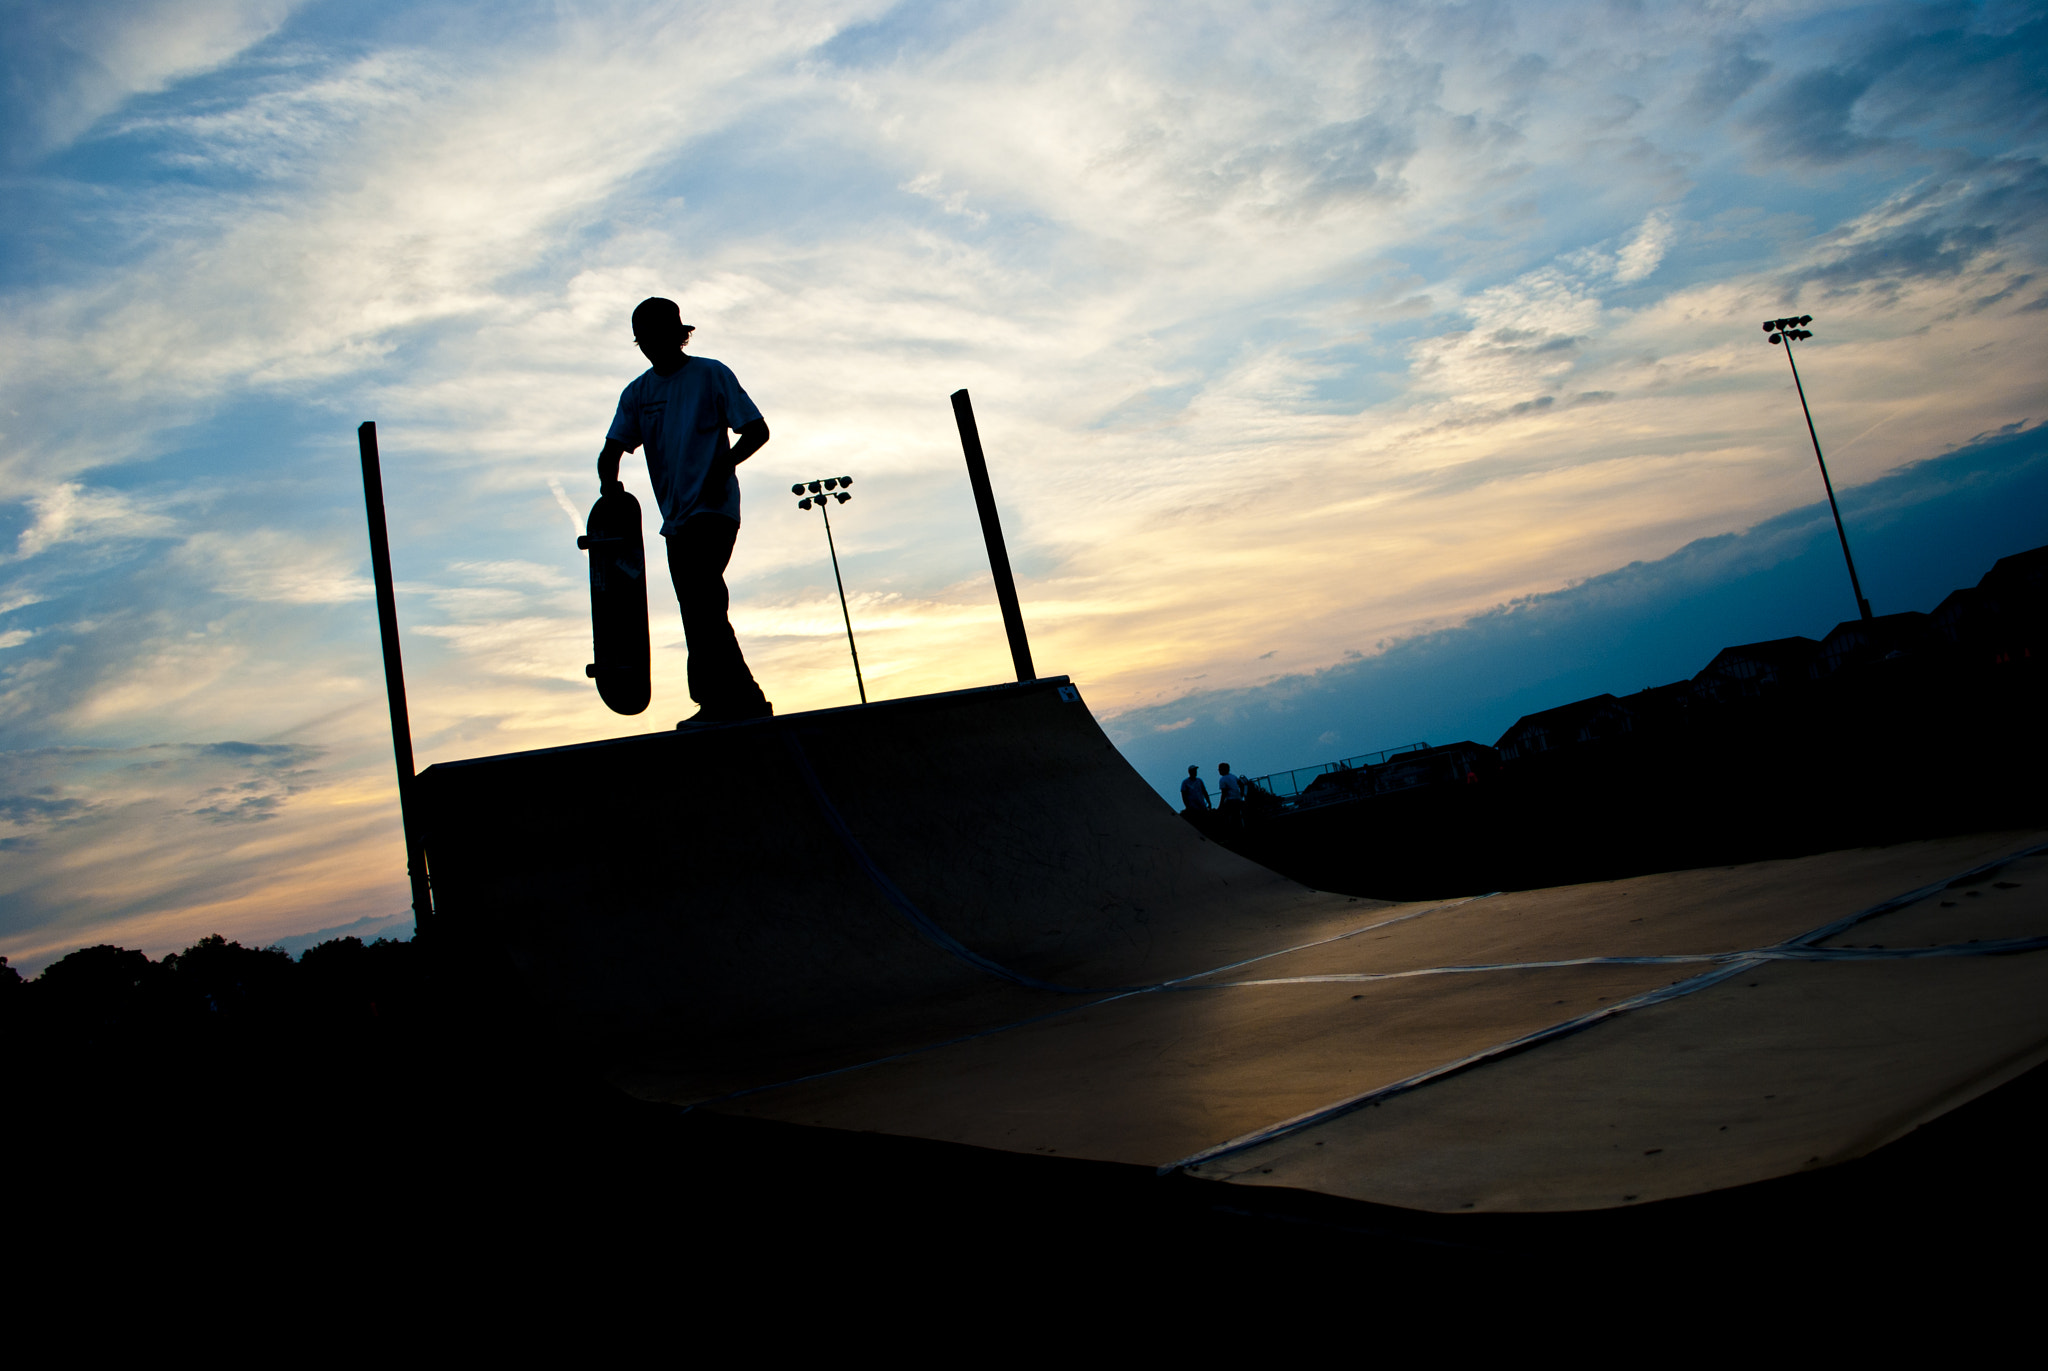 Photograph Half-pipe by Jordan Hoffman on 500px